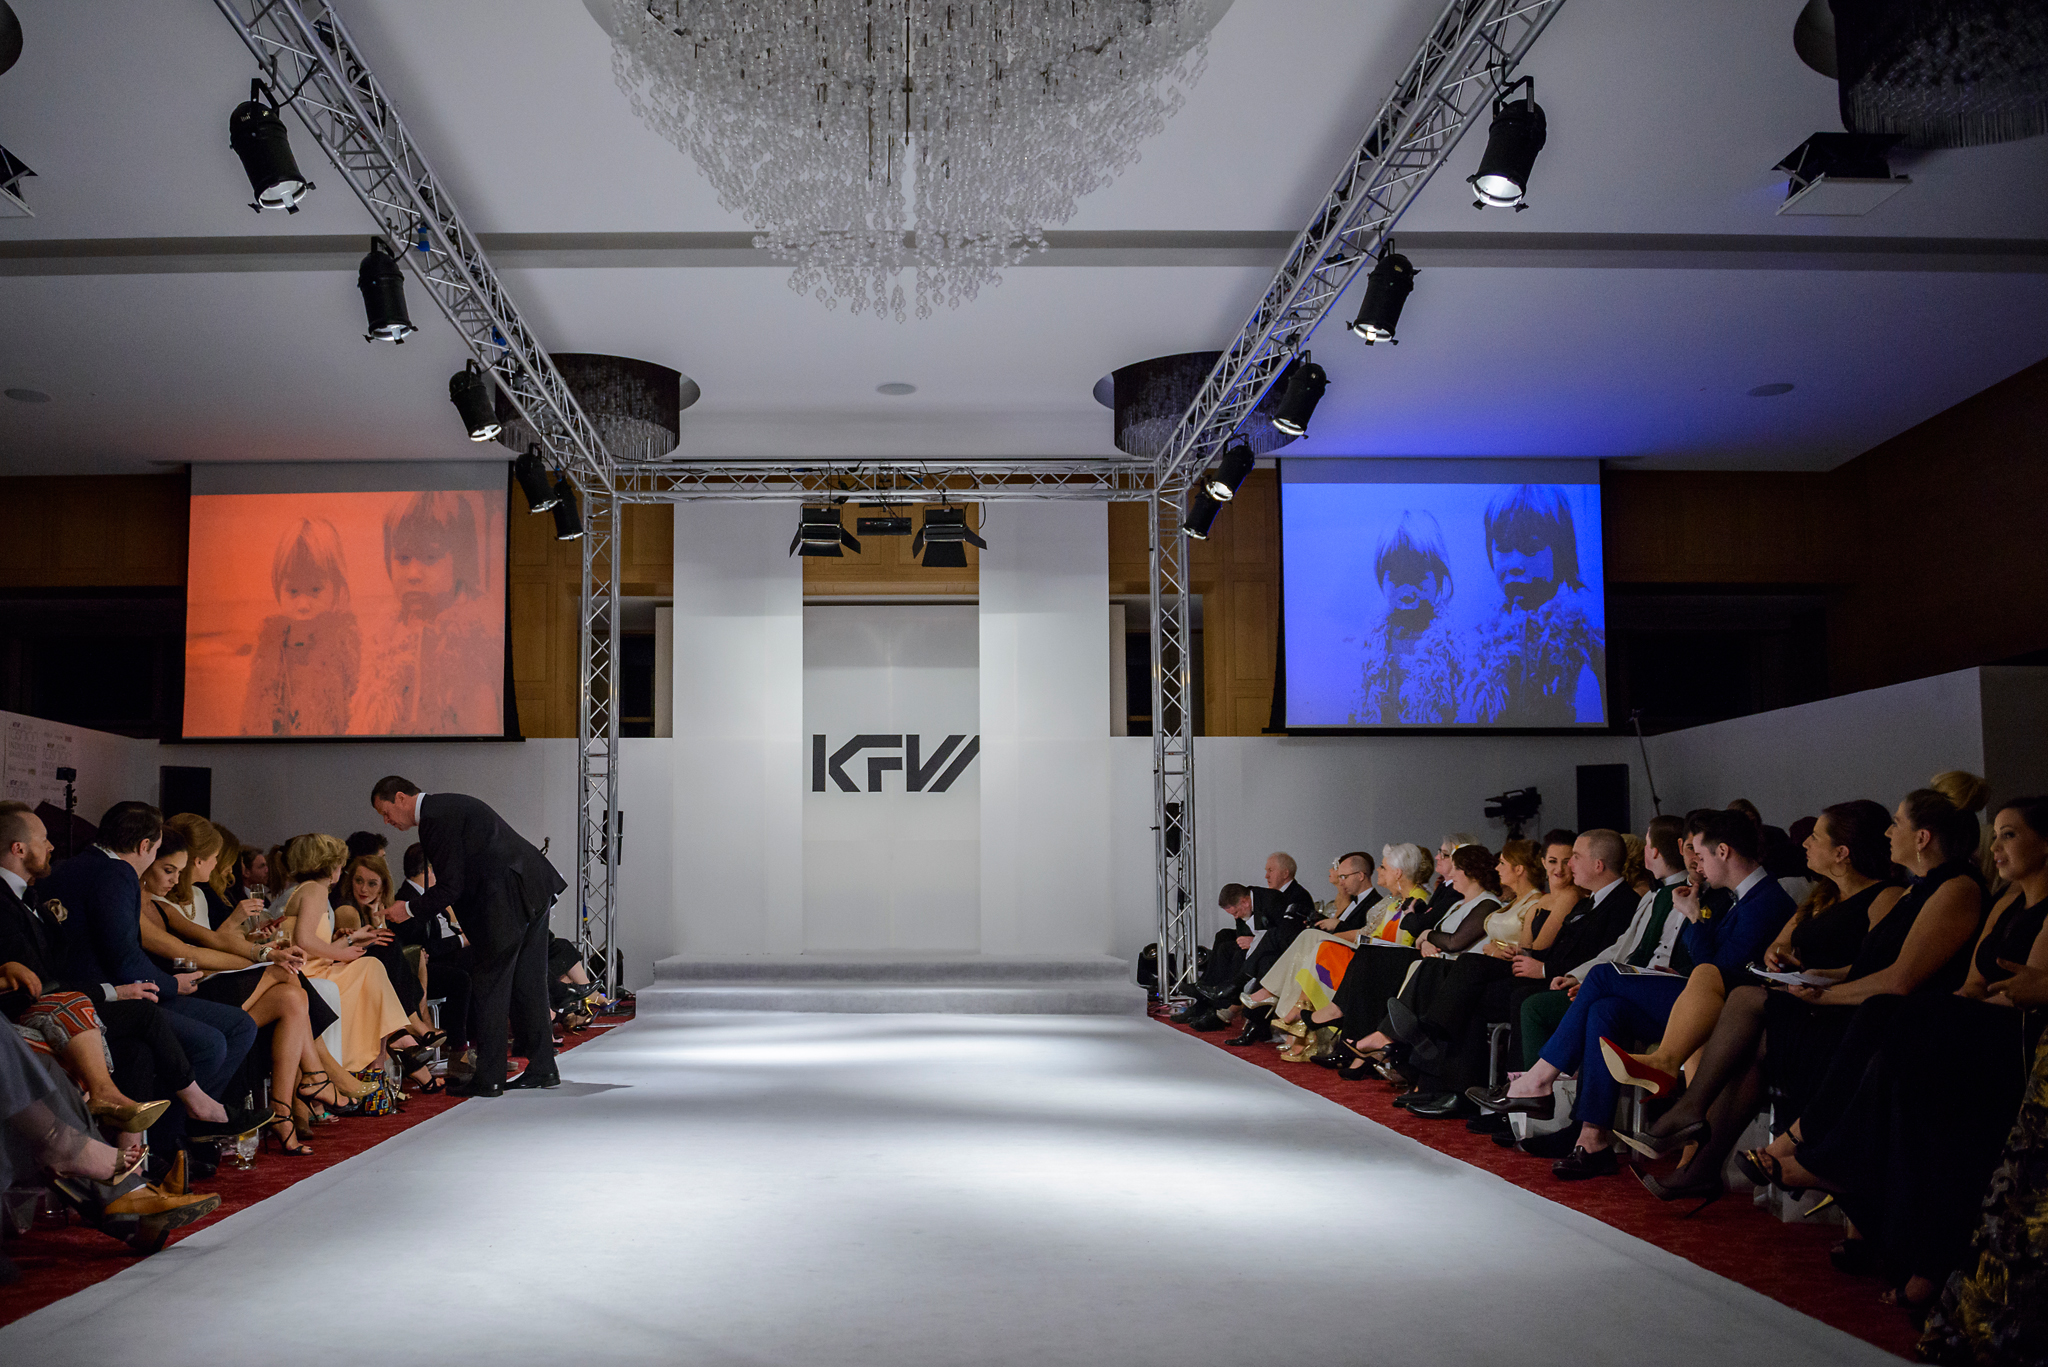 Guests get ready for KFW Show in the Europe Hotel & Resort, Killarney. (Pix: Pawel Nowak)